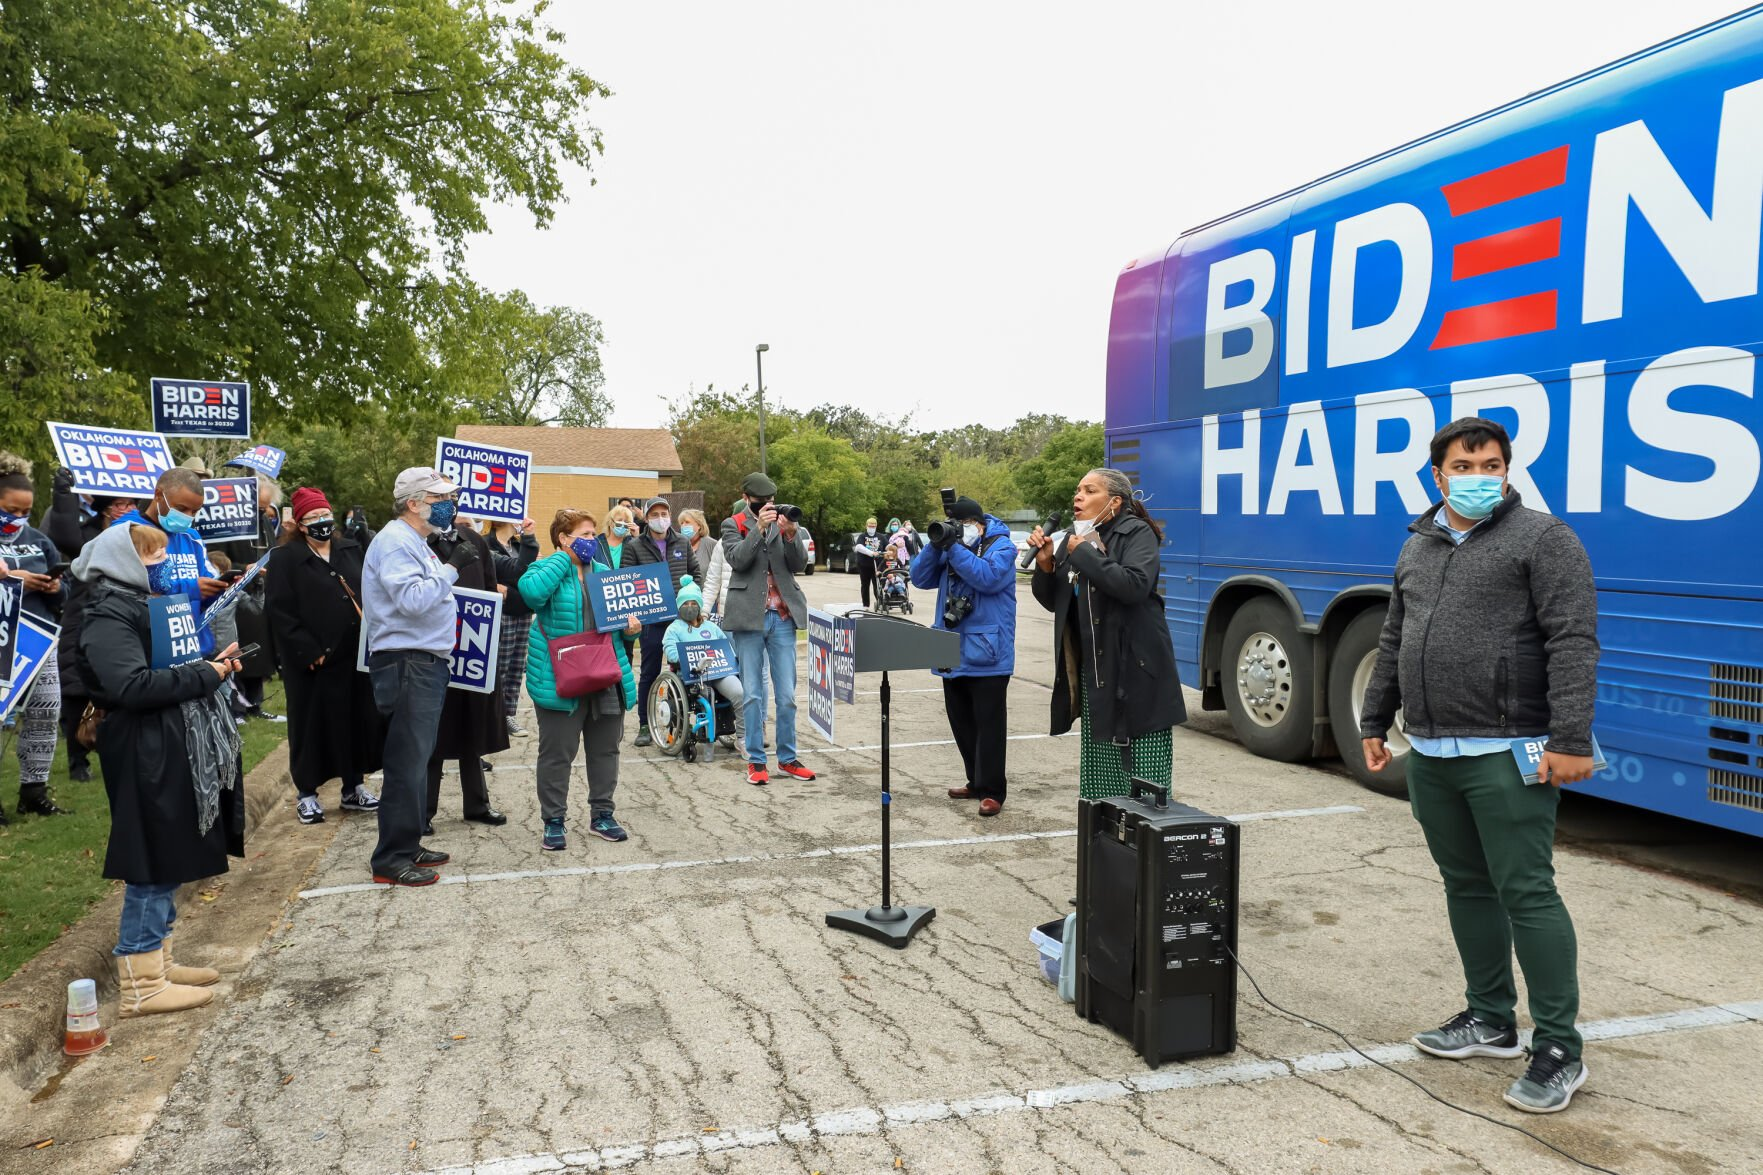 Biden campaign bus tour visits Fort Worth ahead of Kamala Harris visit on Friday